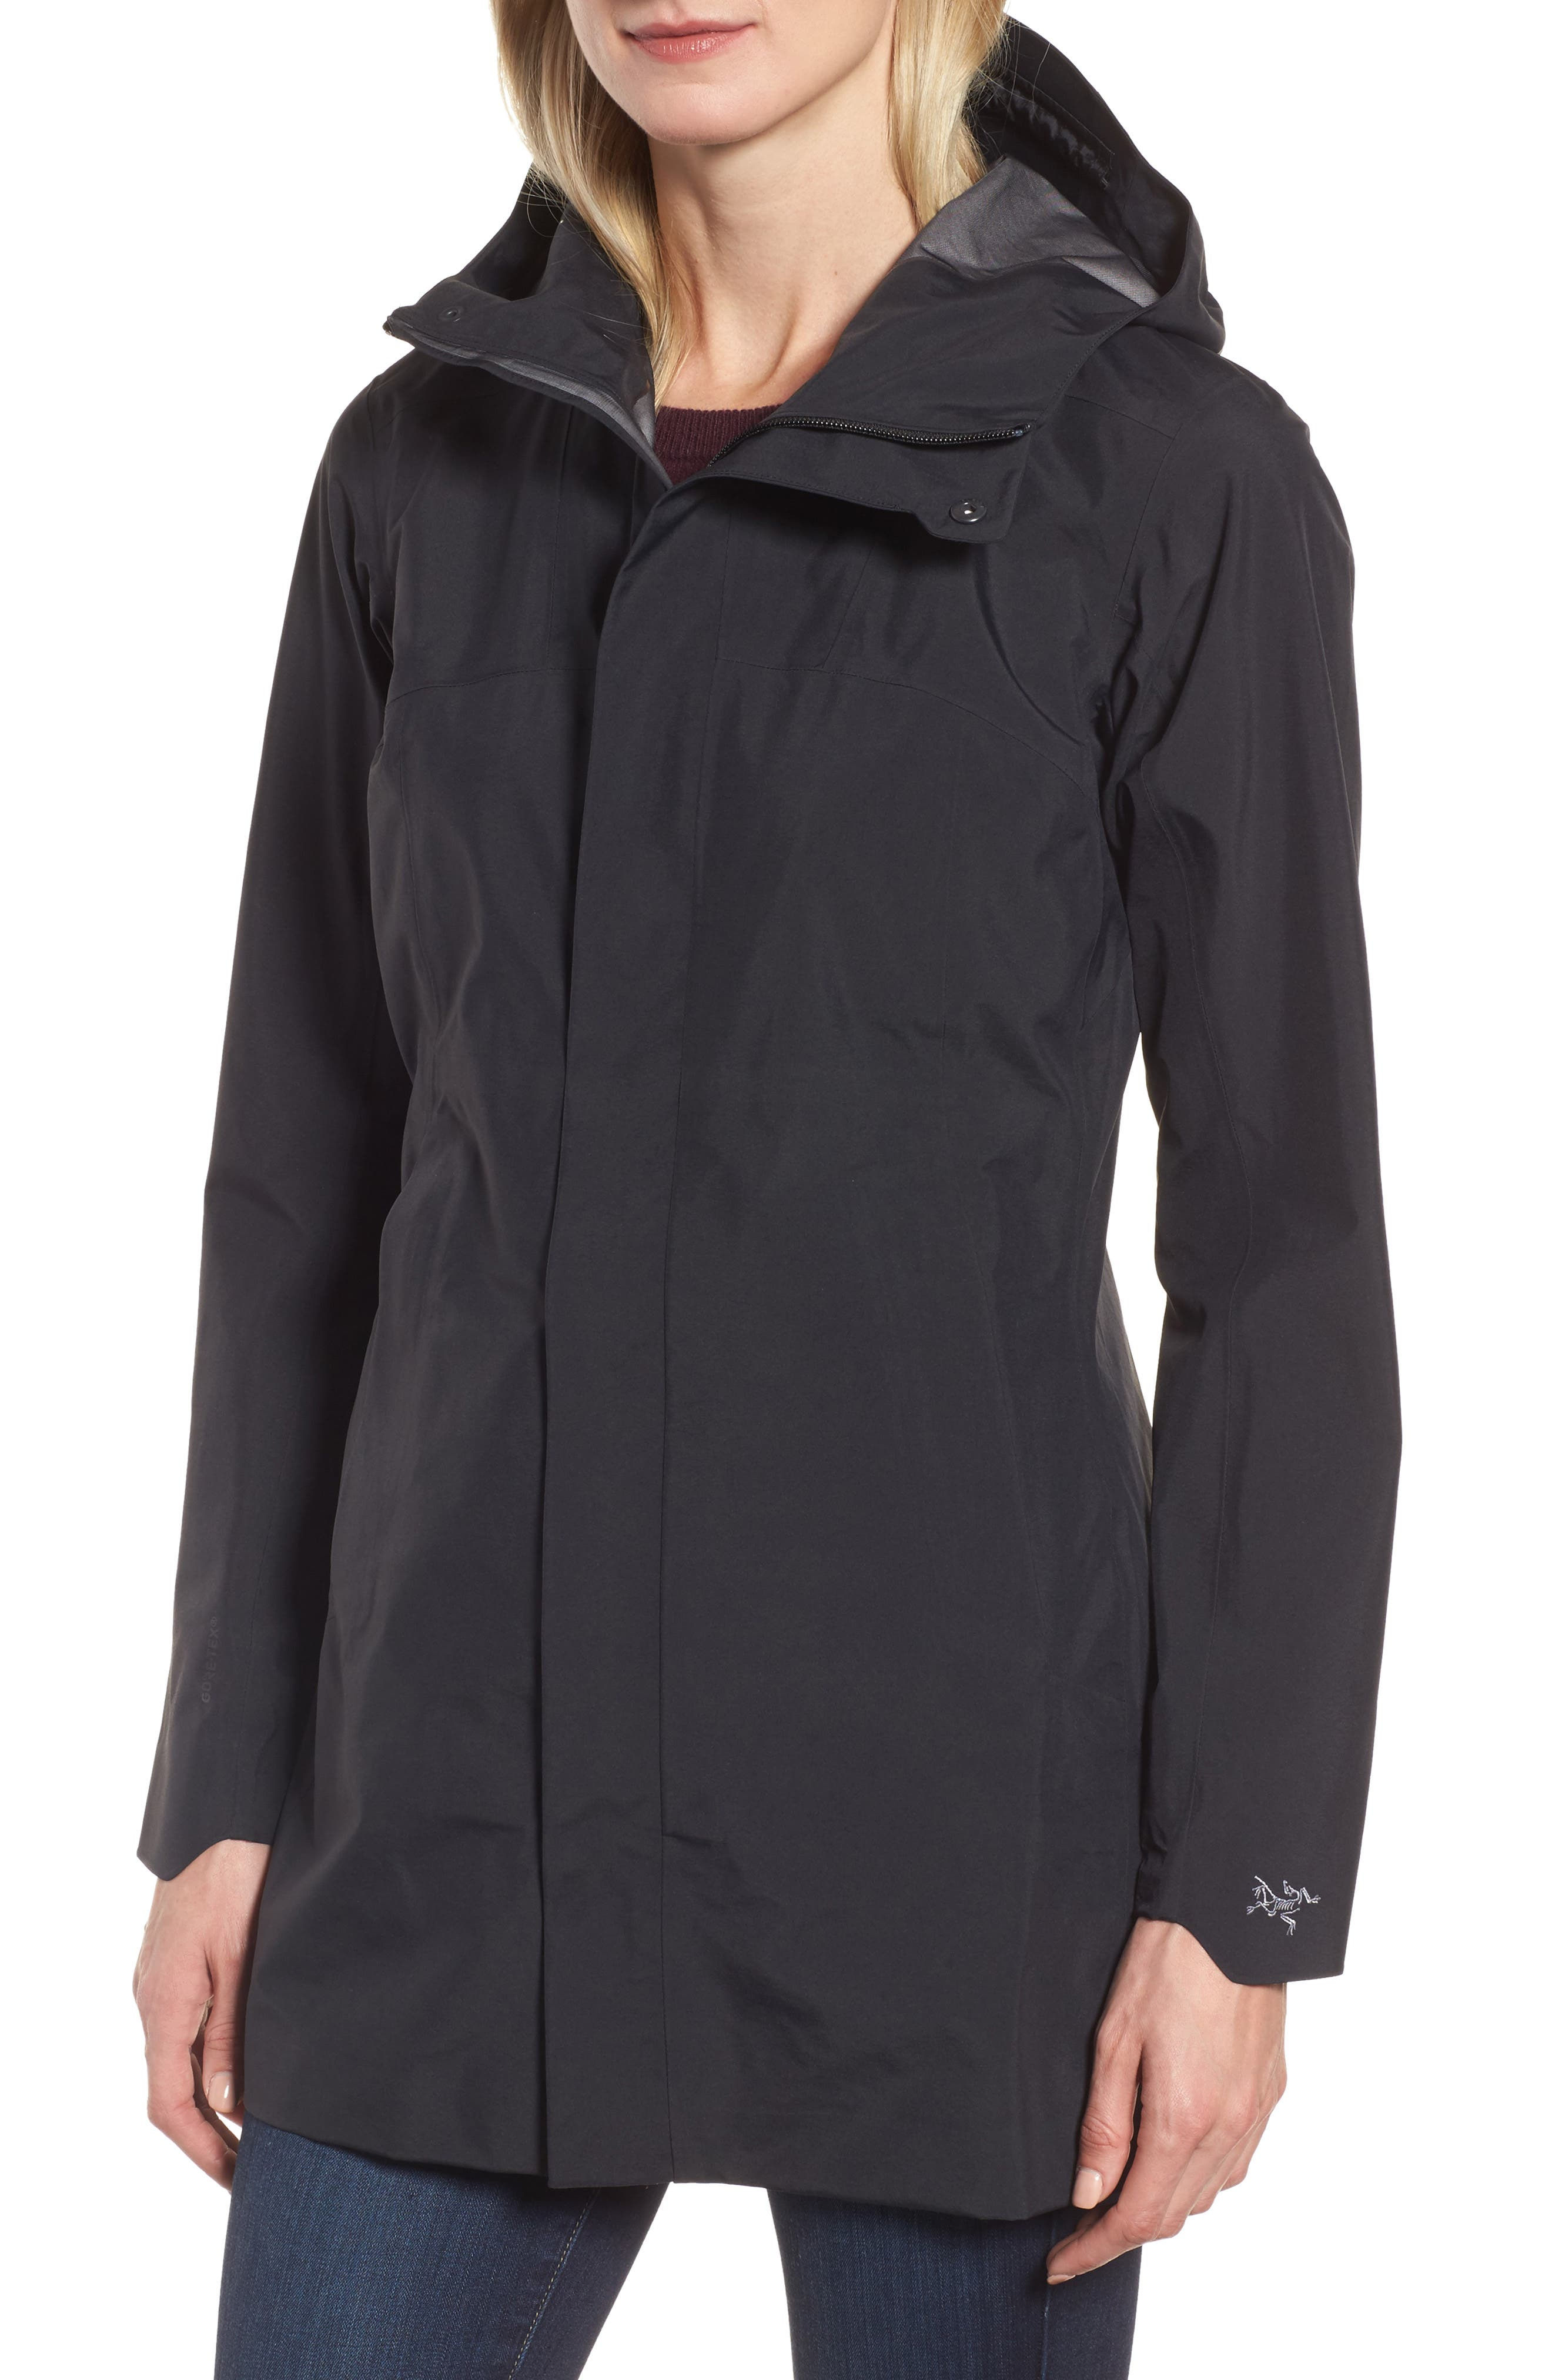 Codetta Waterproof Relaxed Fit Gore-Tex<sup>®</sup> 3L Rain Jacket,                             Alternate thumbnail 4, color,                             001